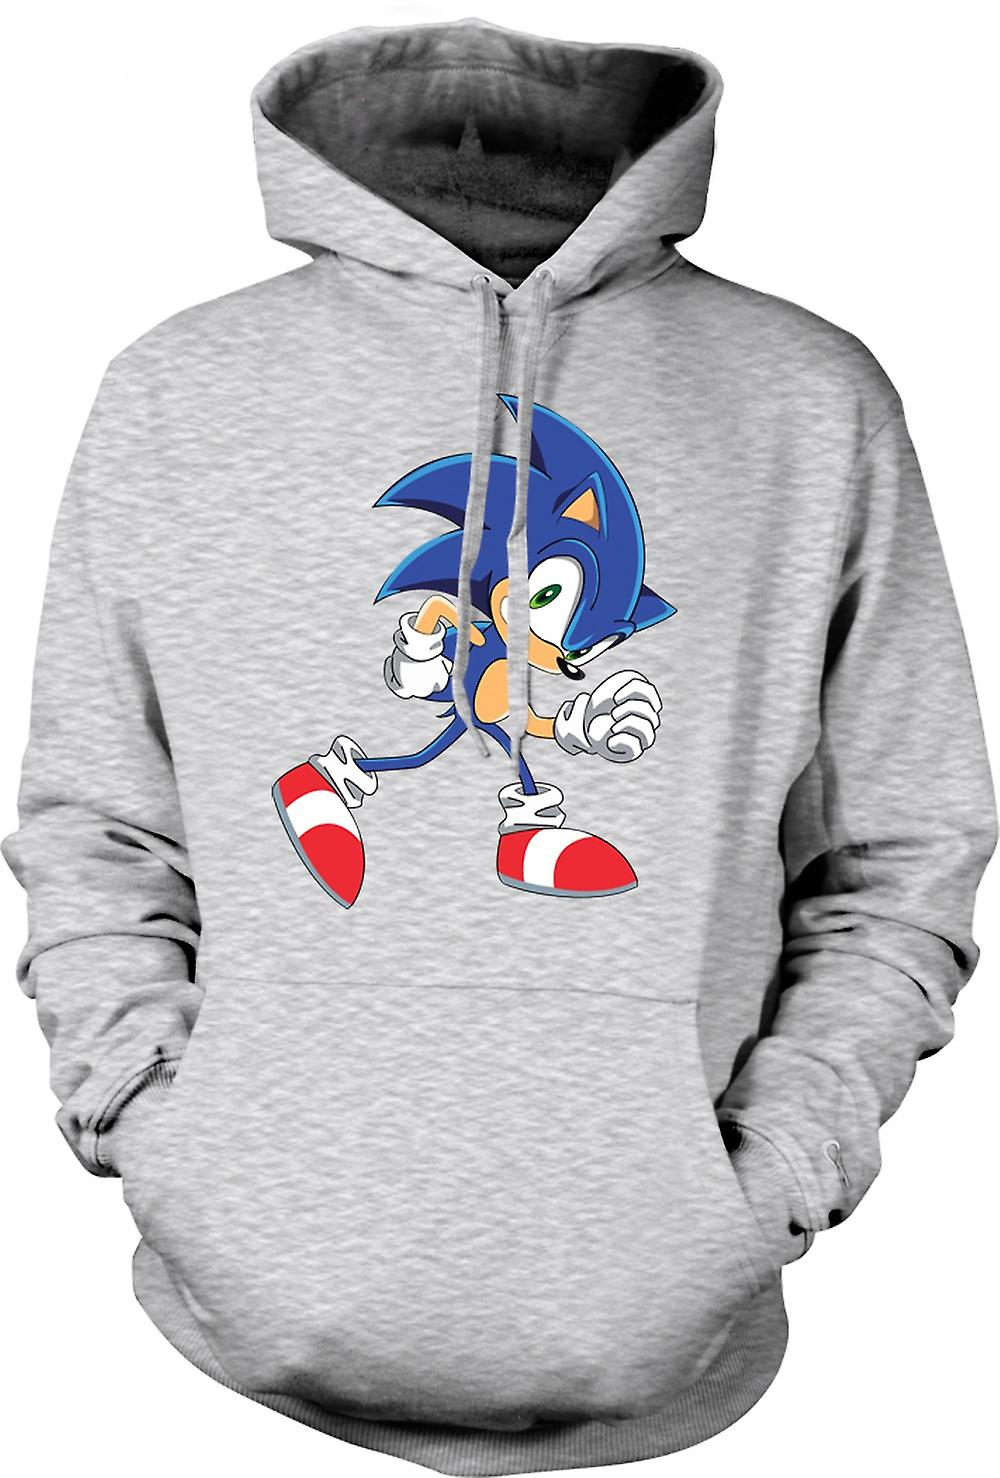 Mens Hoodie - Run Sonic Run - Sonic The Hegehog